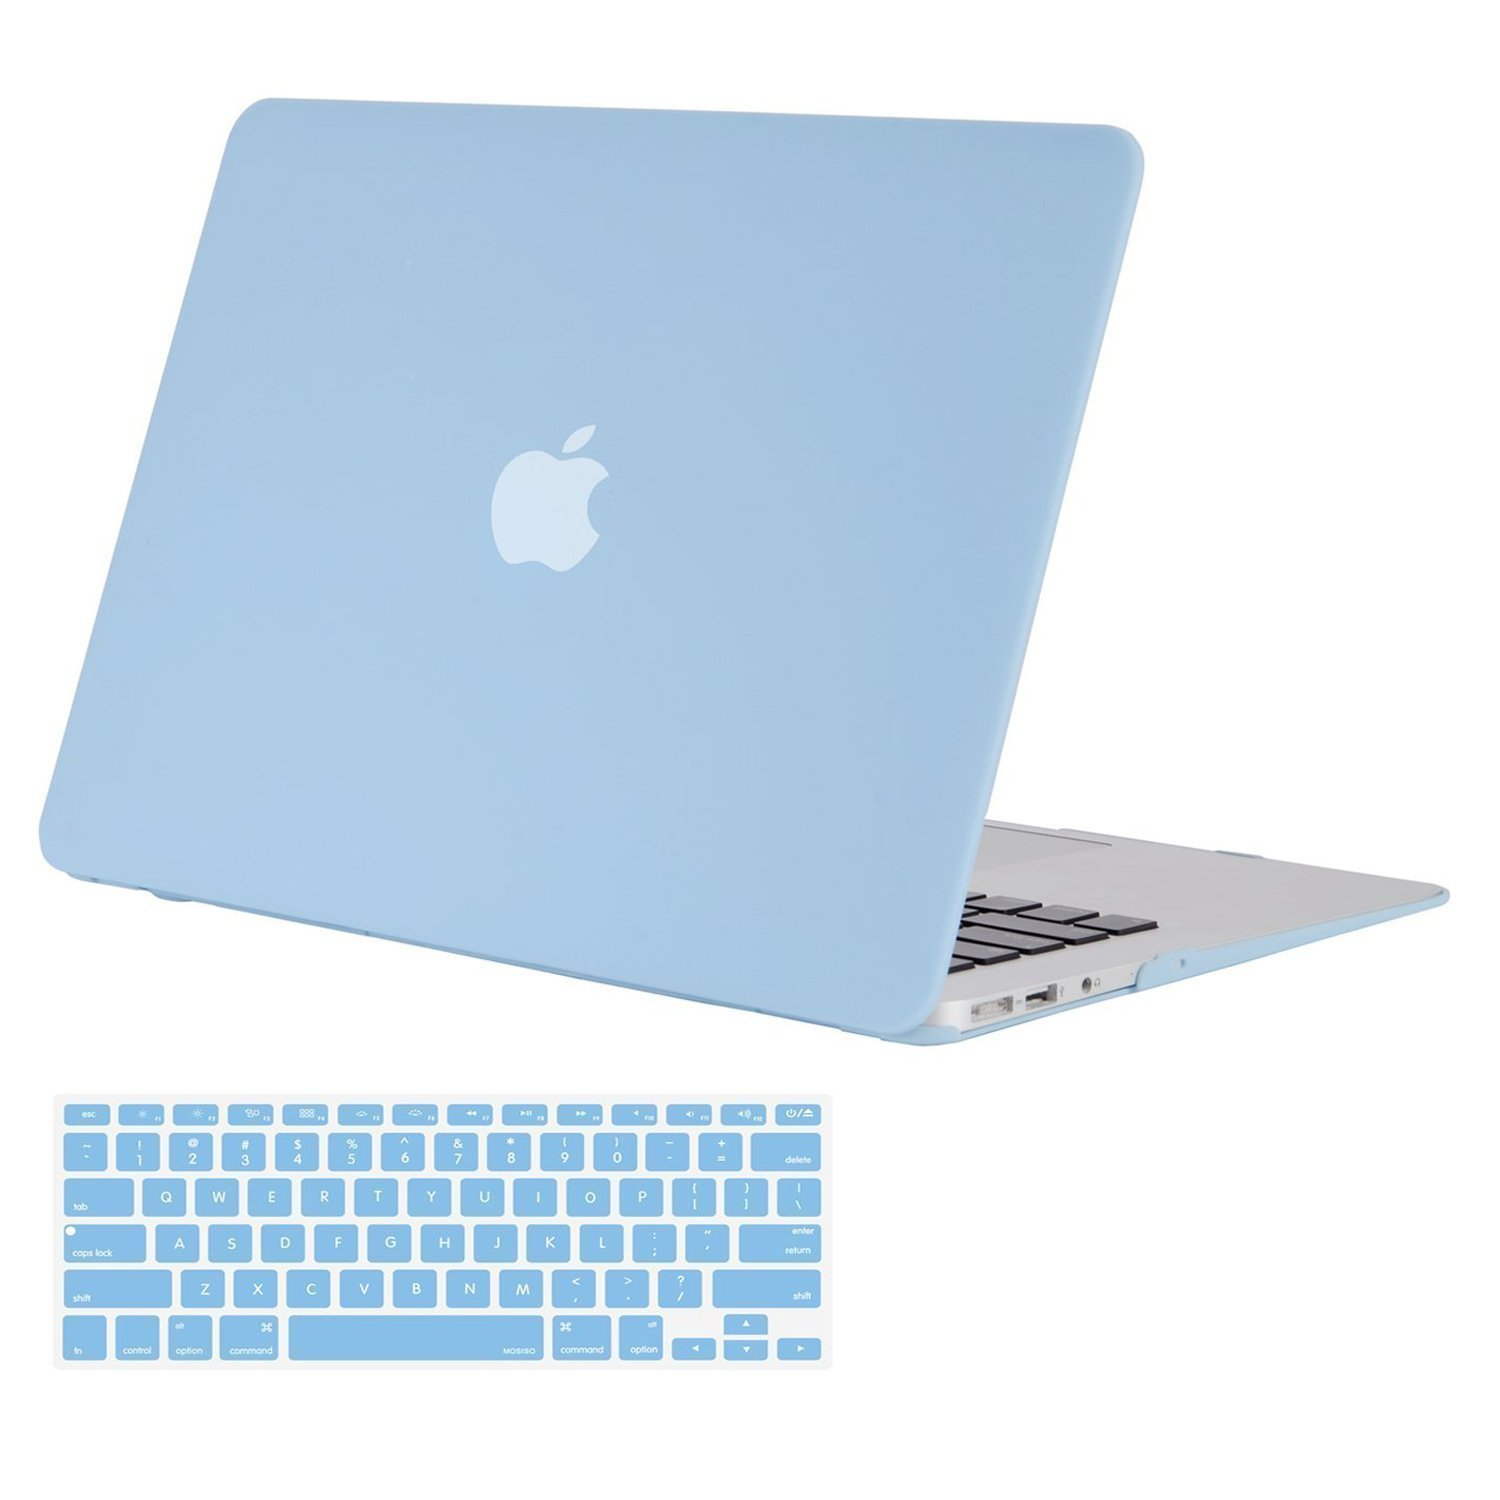 MOSISO Plastic Hard Shell Case & Keyboard Cover Skin Only Compatible with MacBook Air 11 Inch (Models: A1370 & A1465), Airy Blue by MOSISO